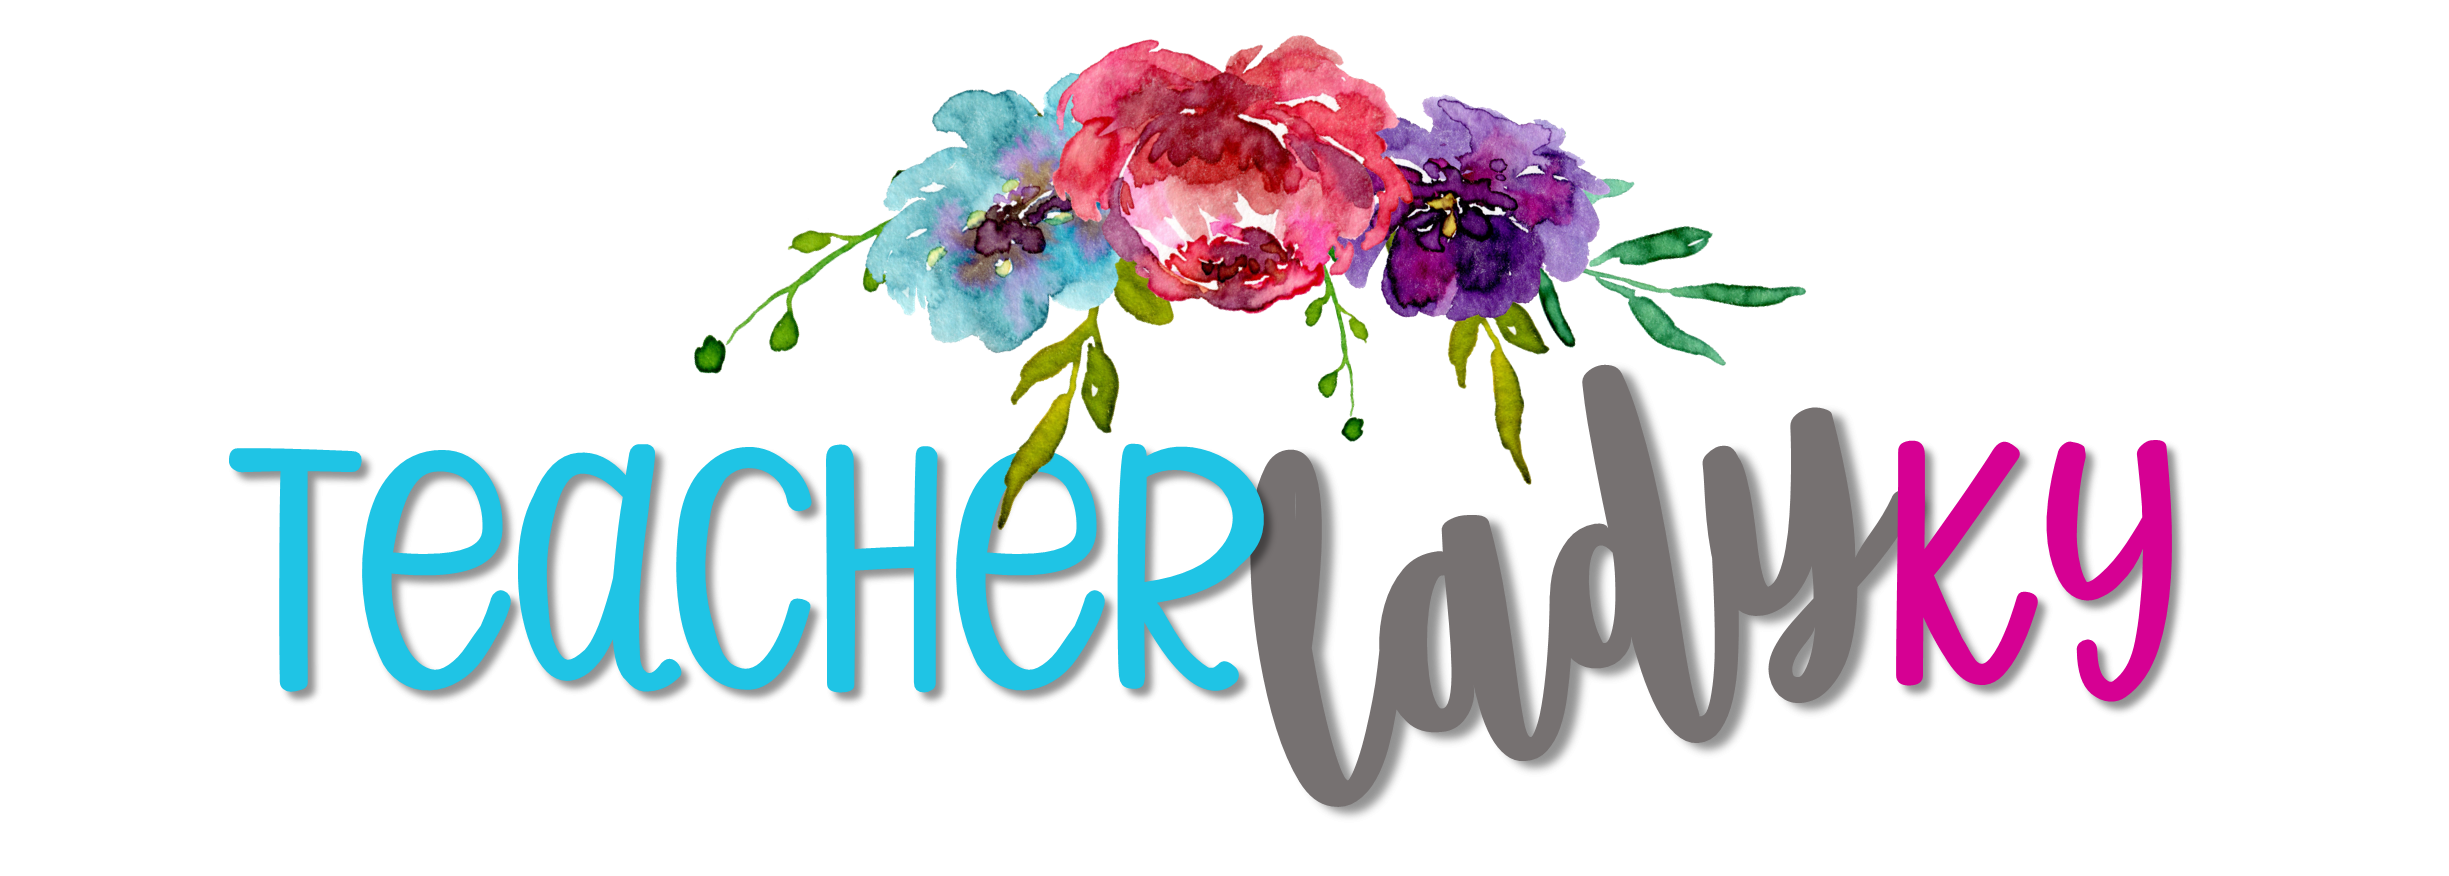 TeacherLadyKY Blog